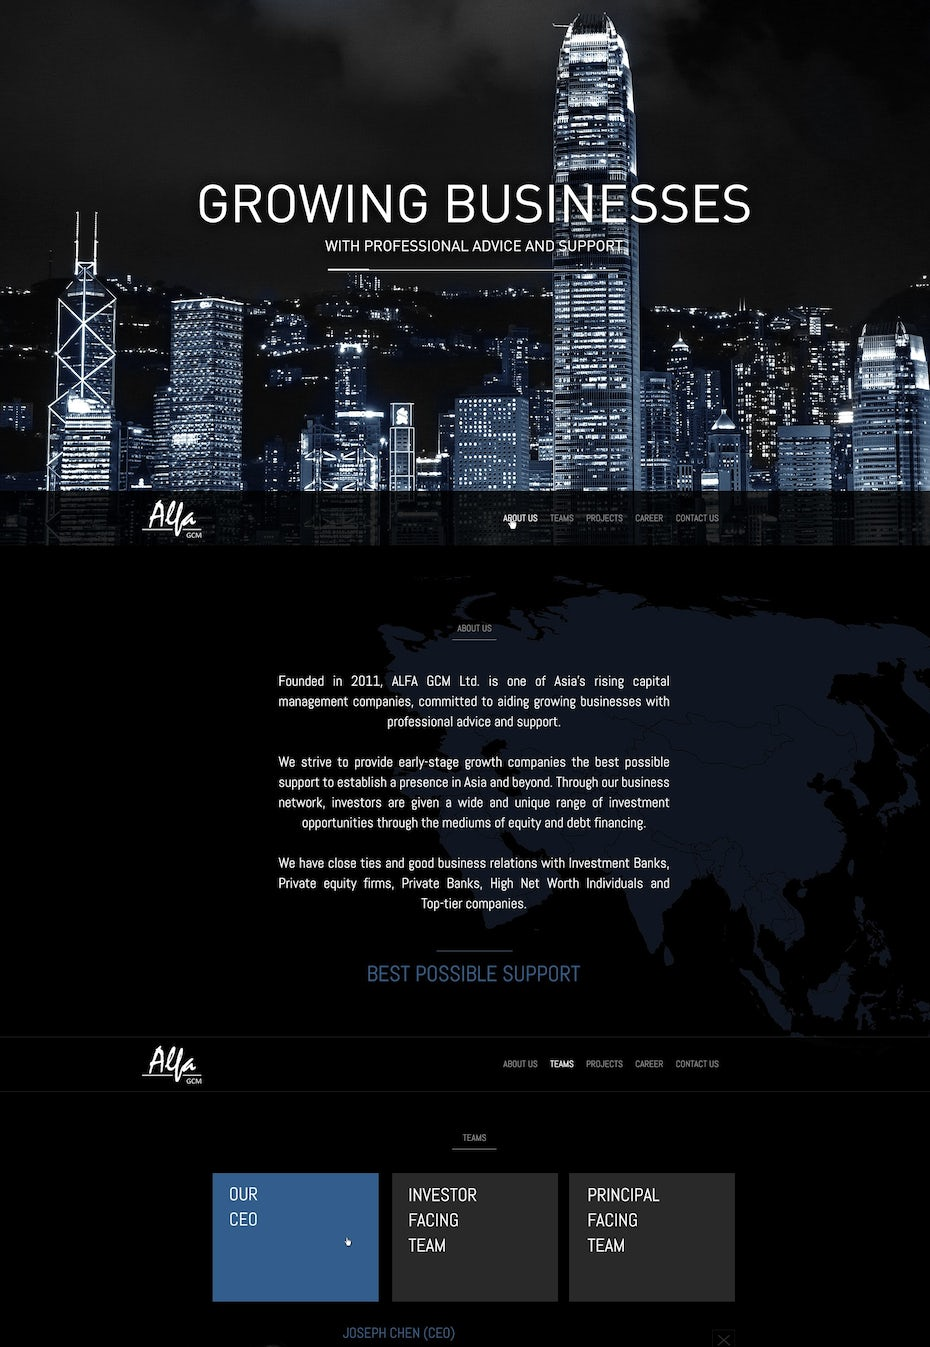 web page banner and background image design